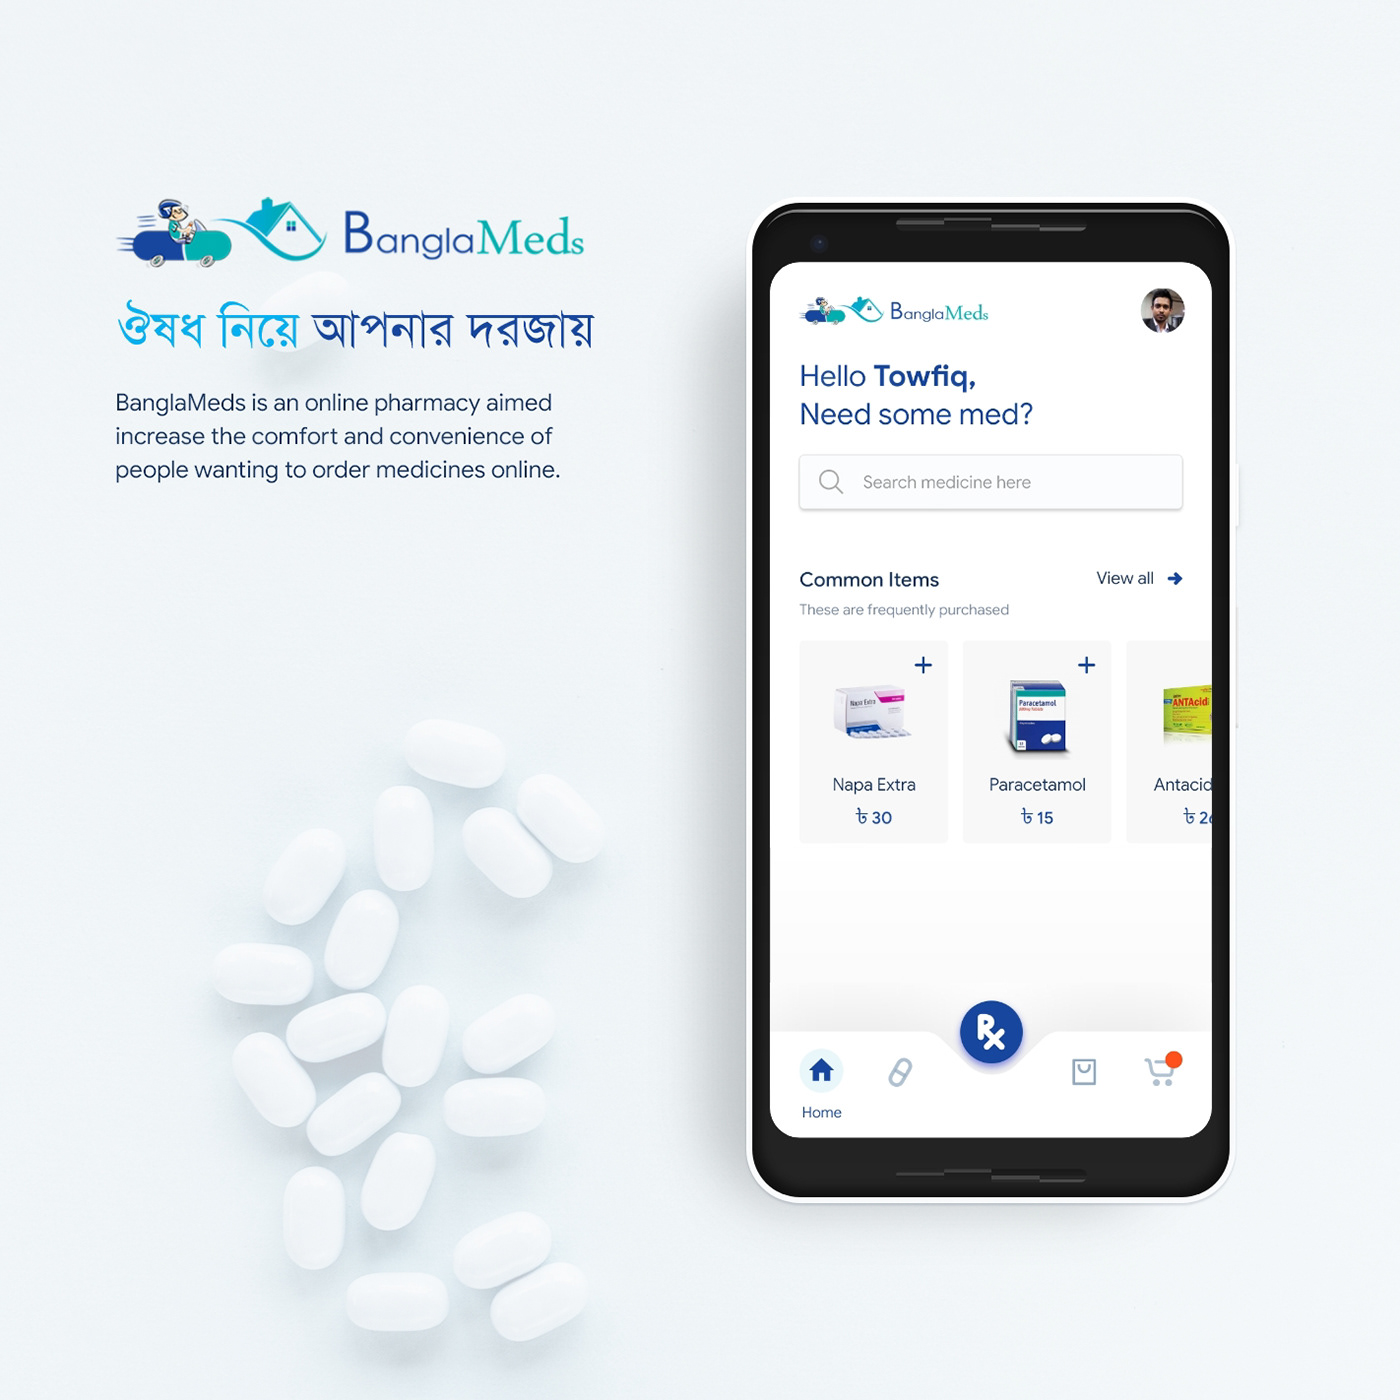 Online pharmacy to order medicine with ease